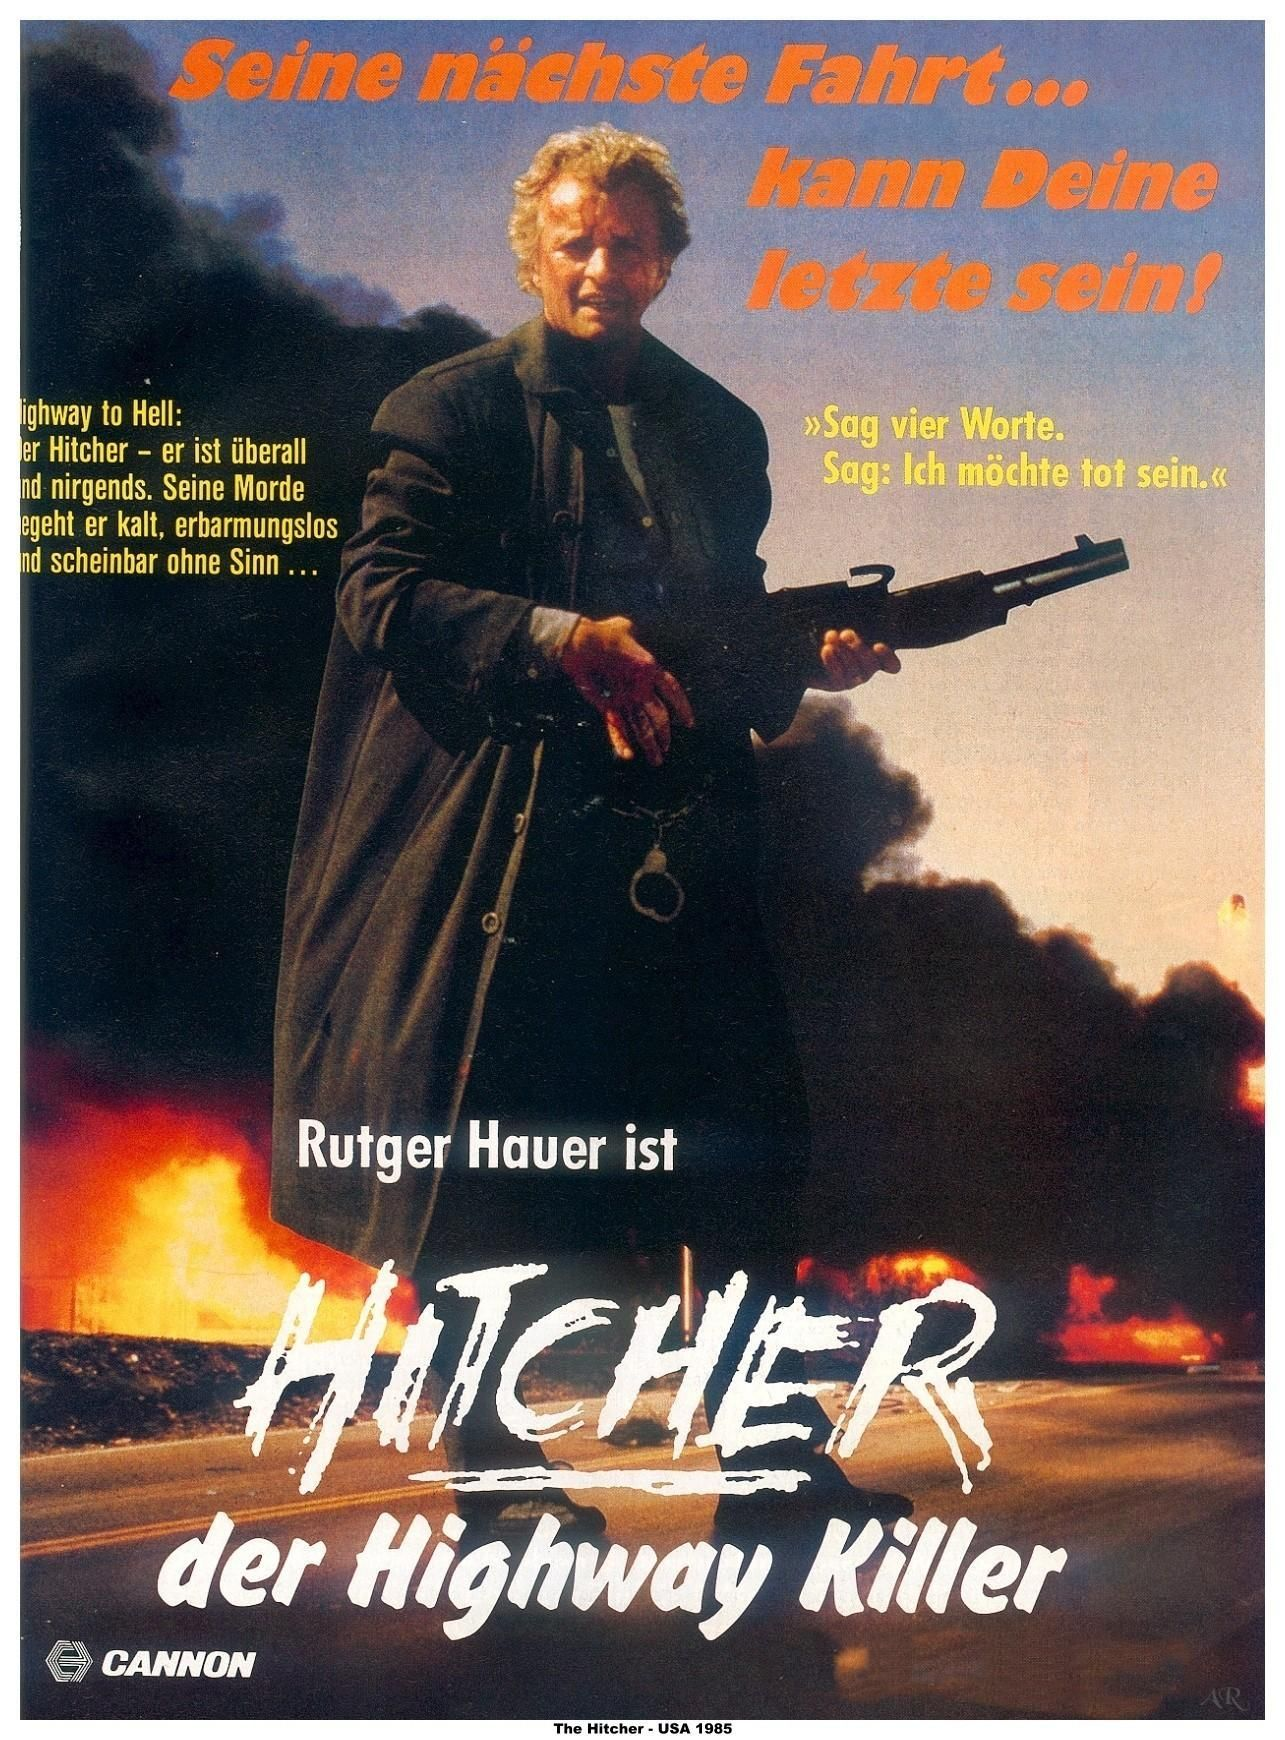 The Hitcher German poster